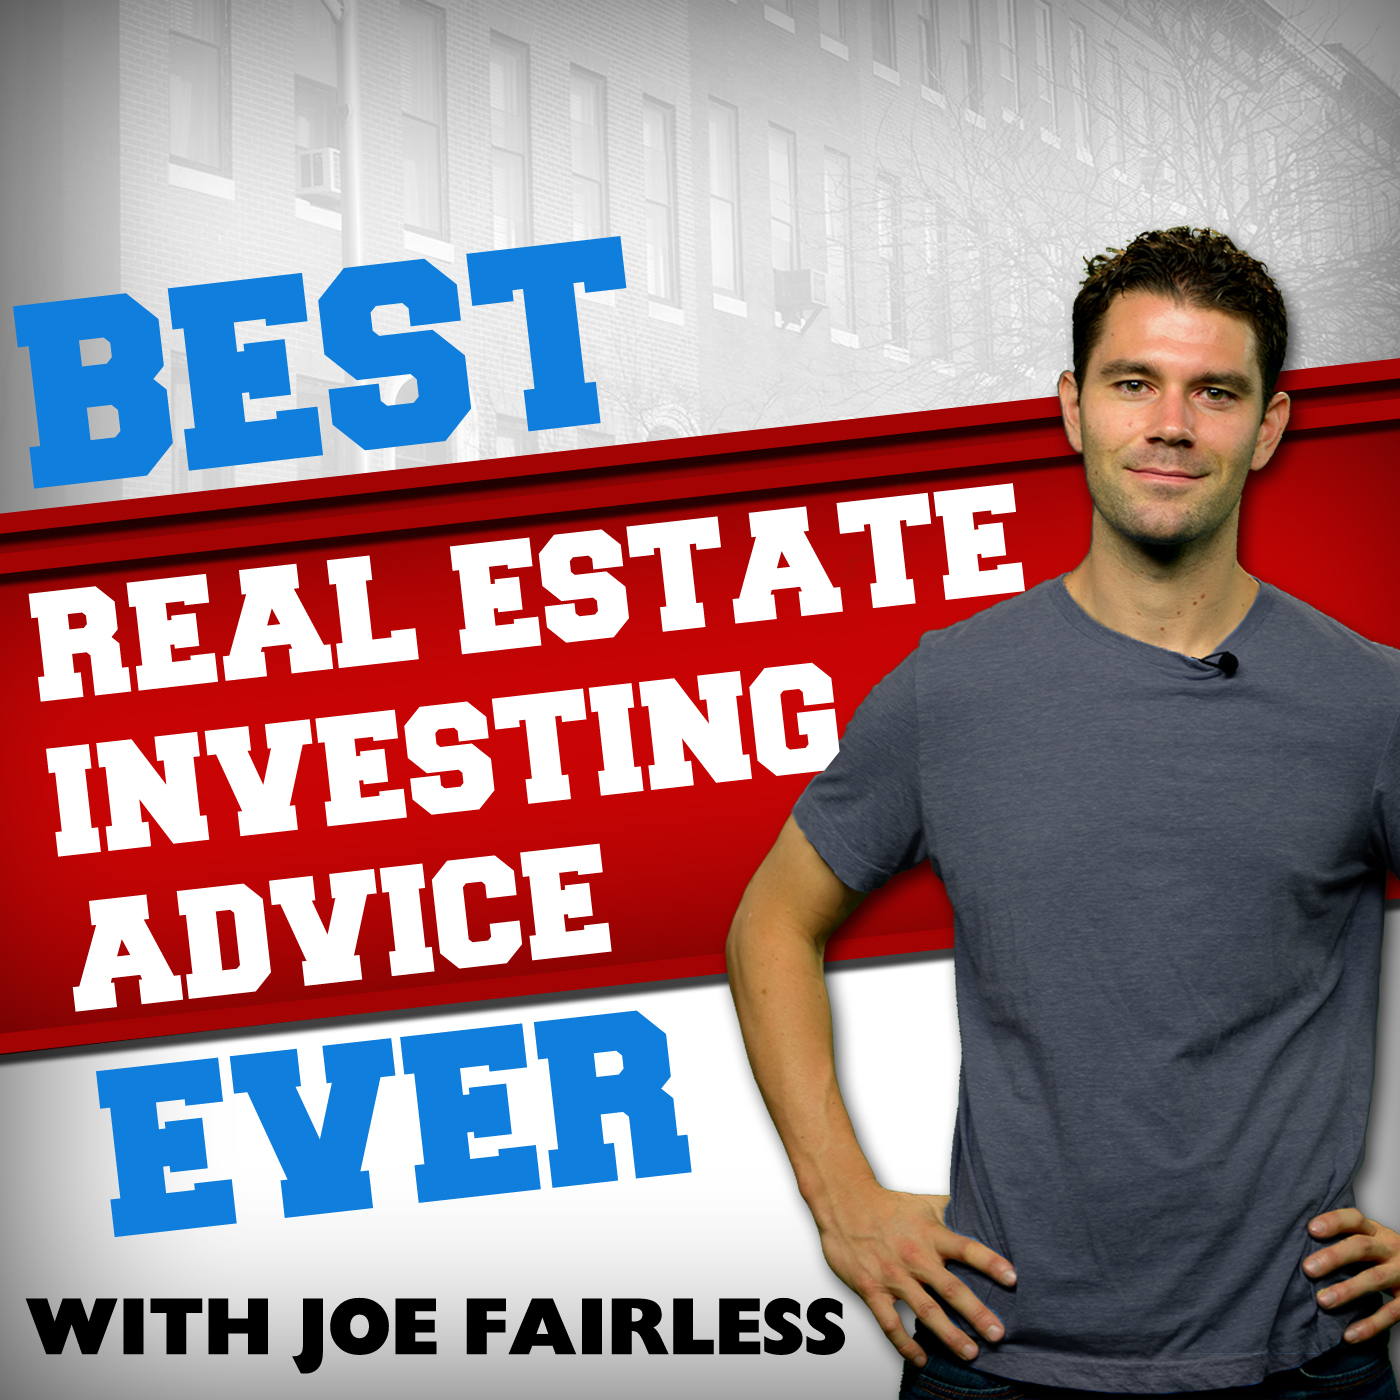 JF294: How to Prove That YOU Are a Credible Investor and Why It's So Important to Prove